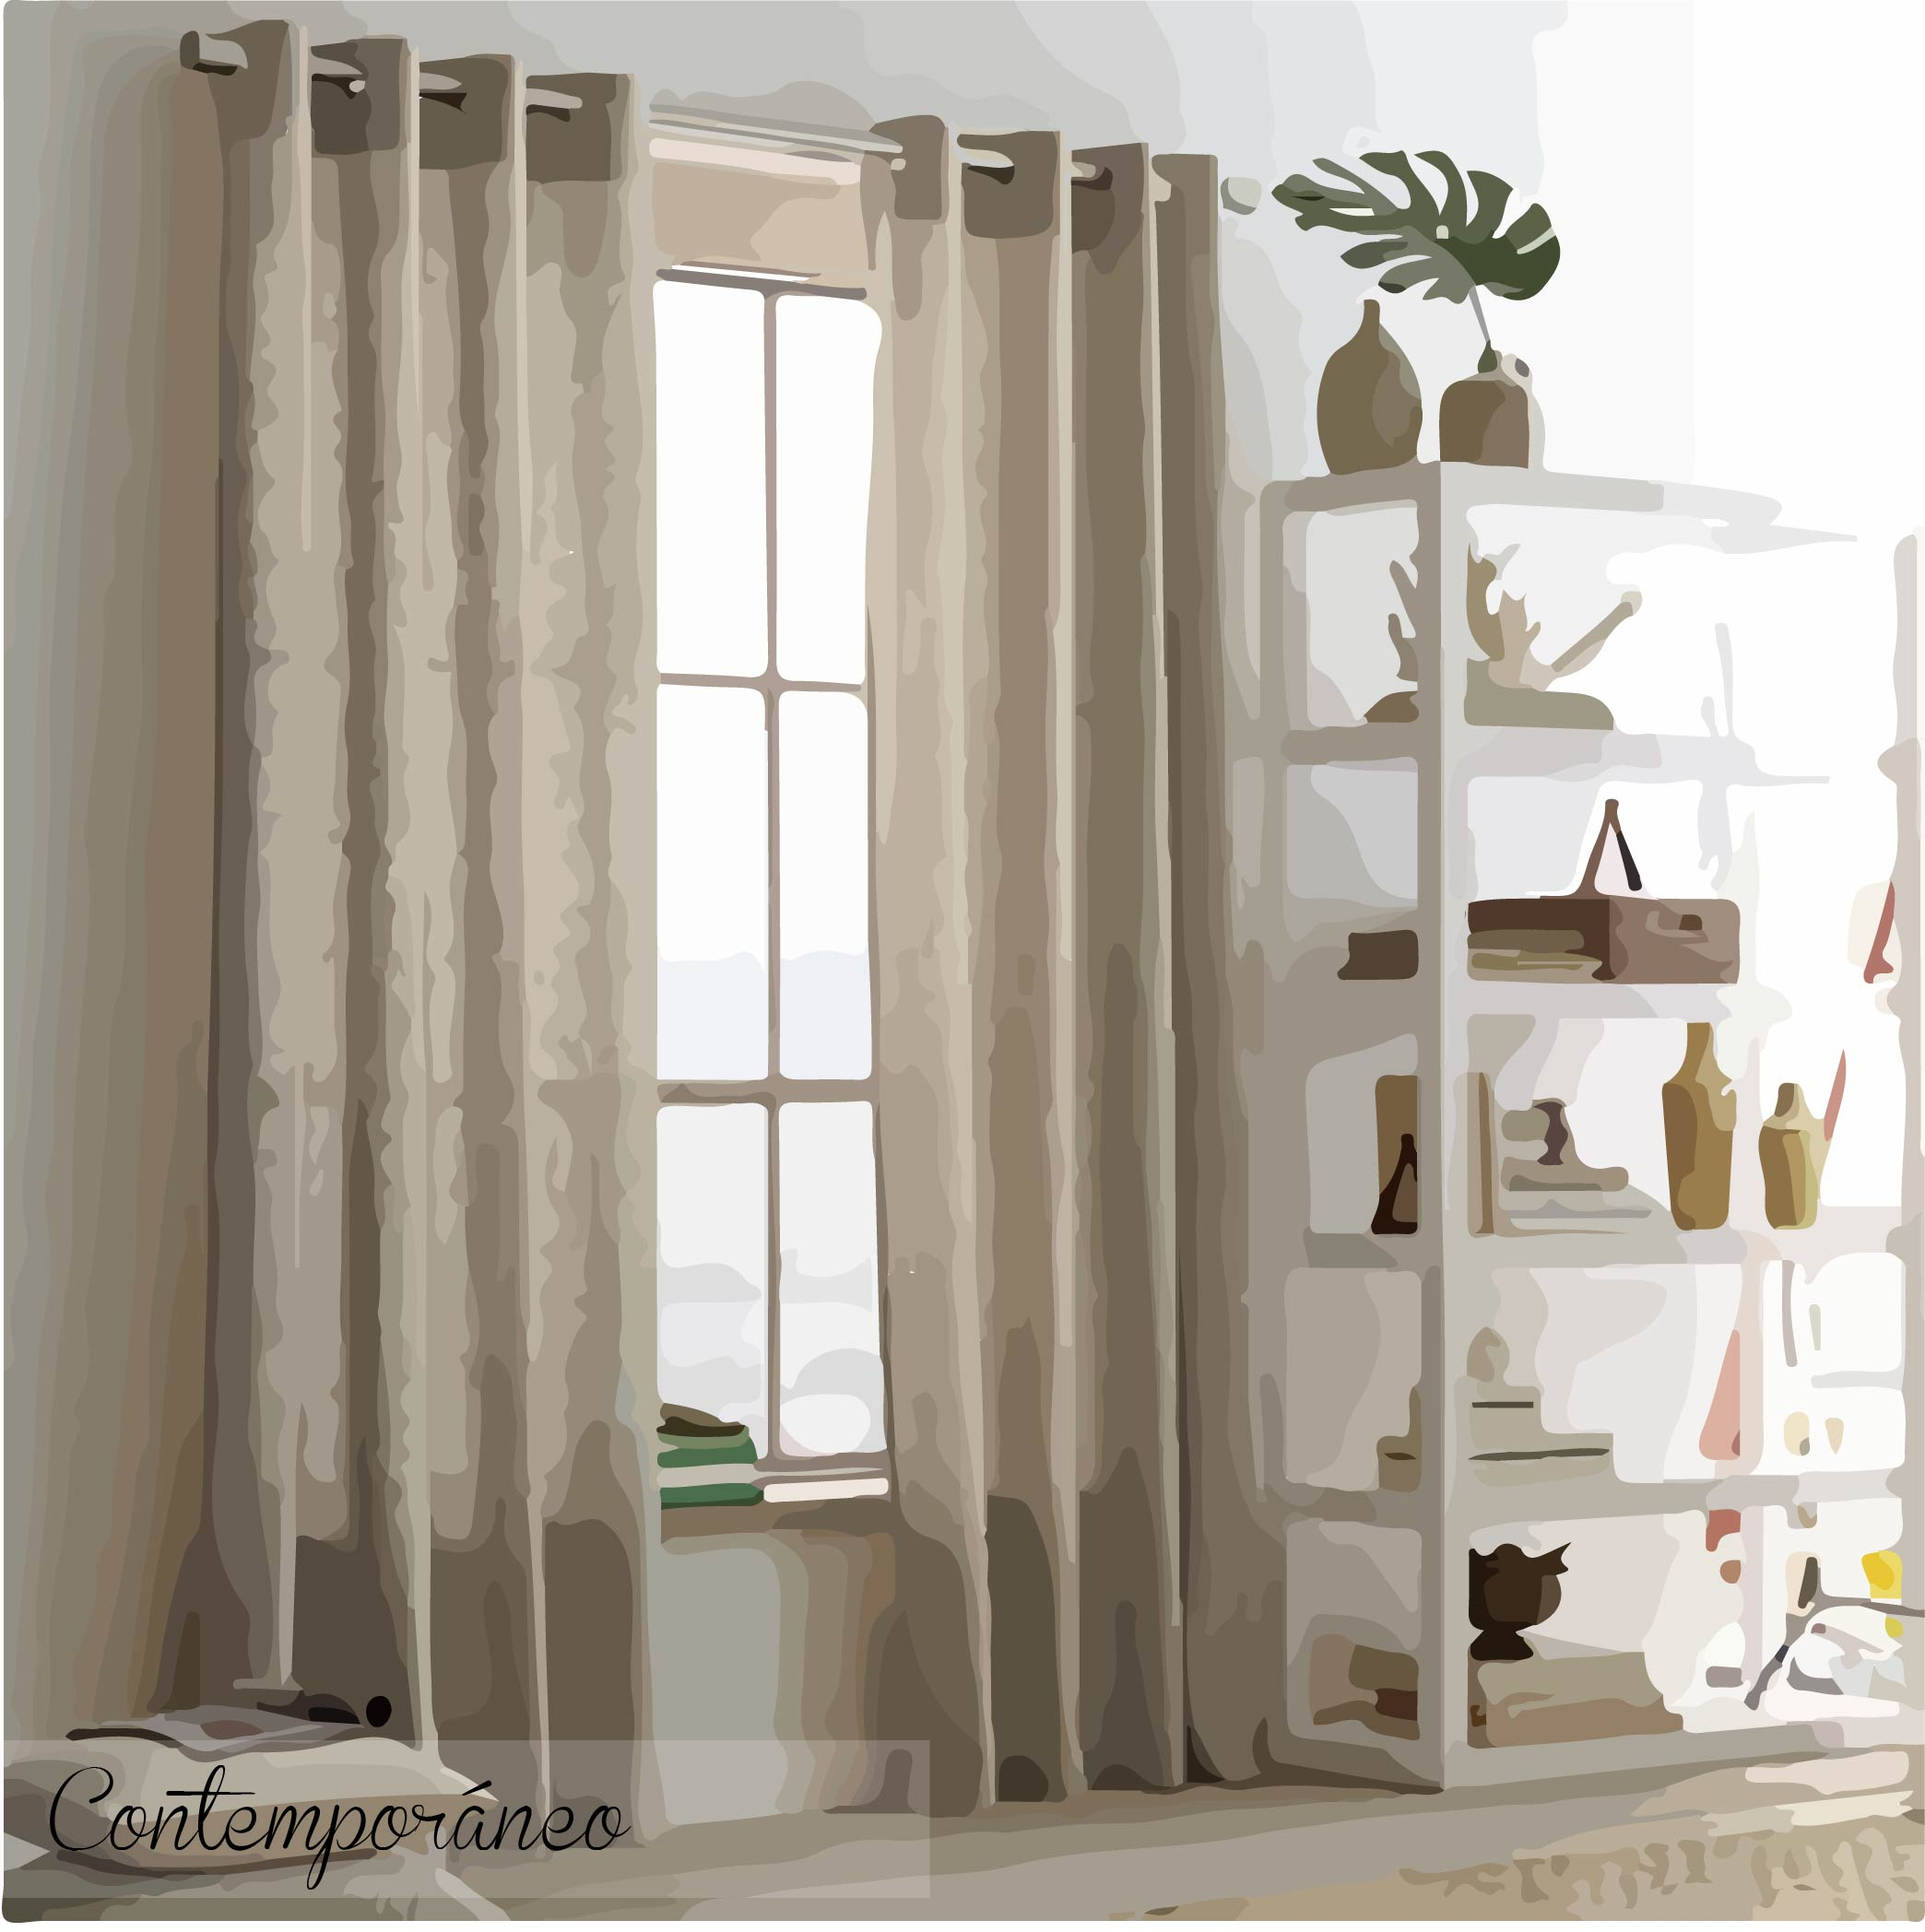 Ideas para decorar tu casa con cortinas me lo dijo lola for Cortinas de salon ikea